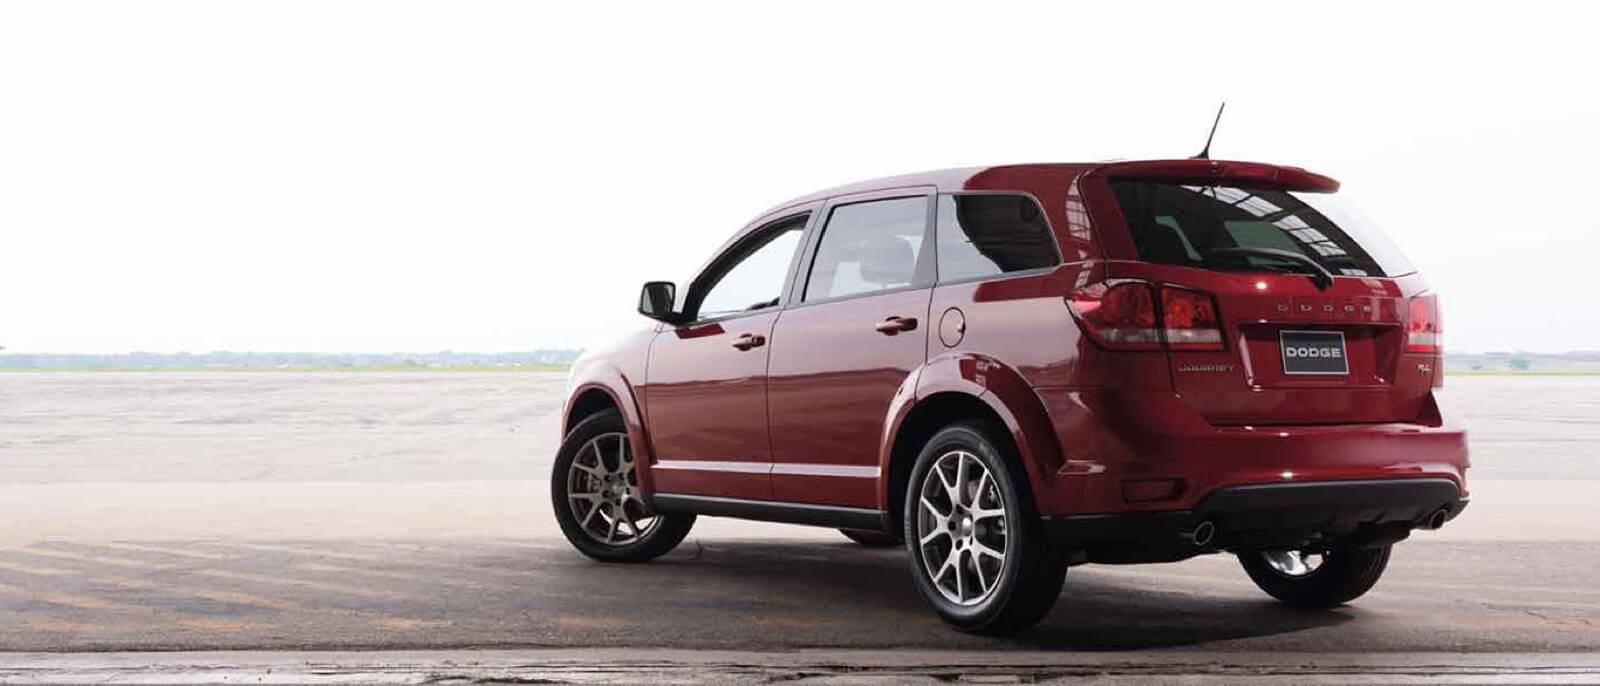 2016 Dodge Journey rear view